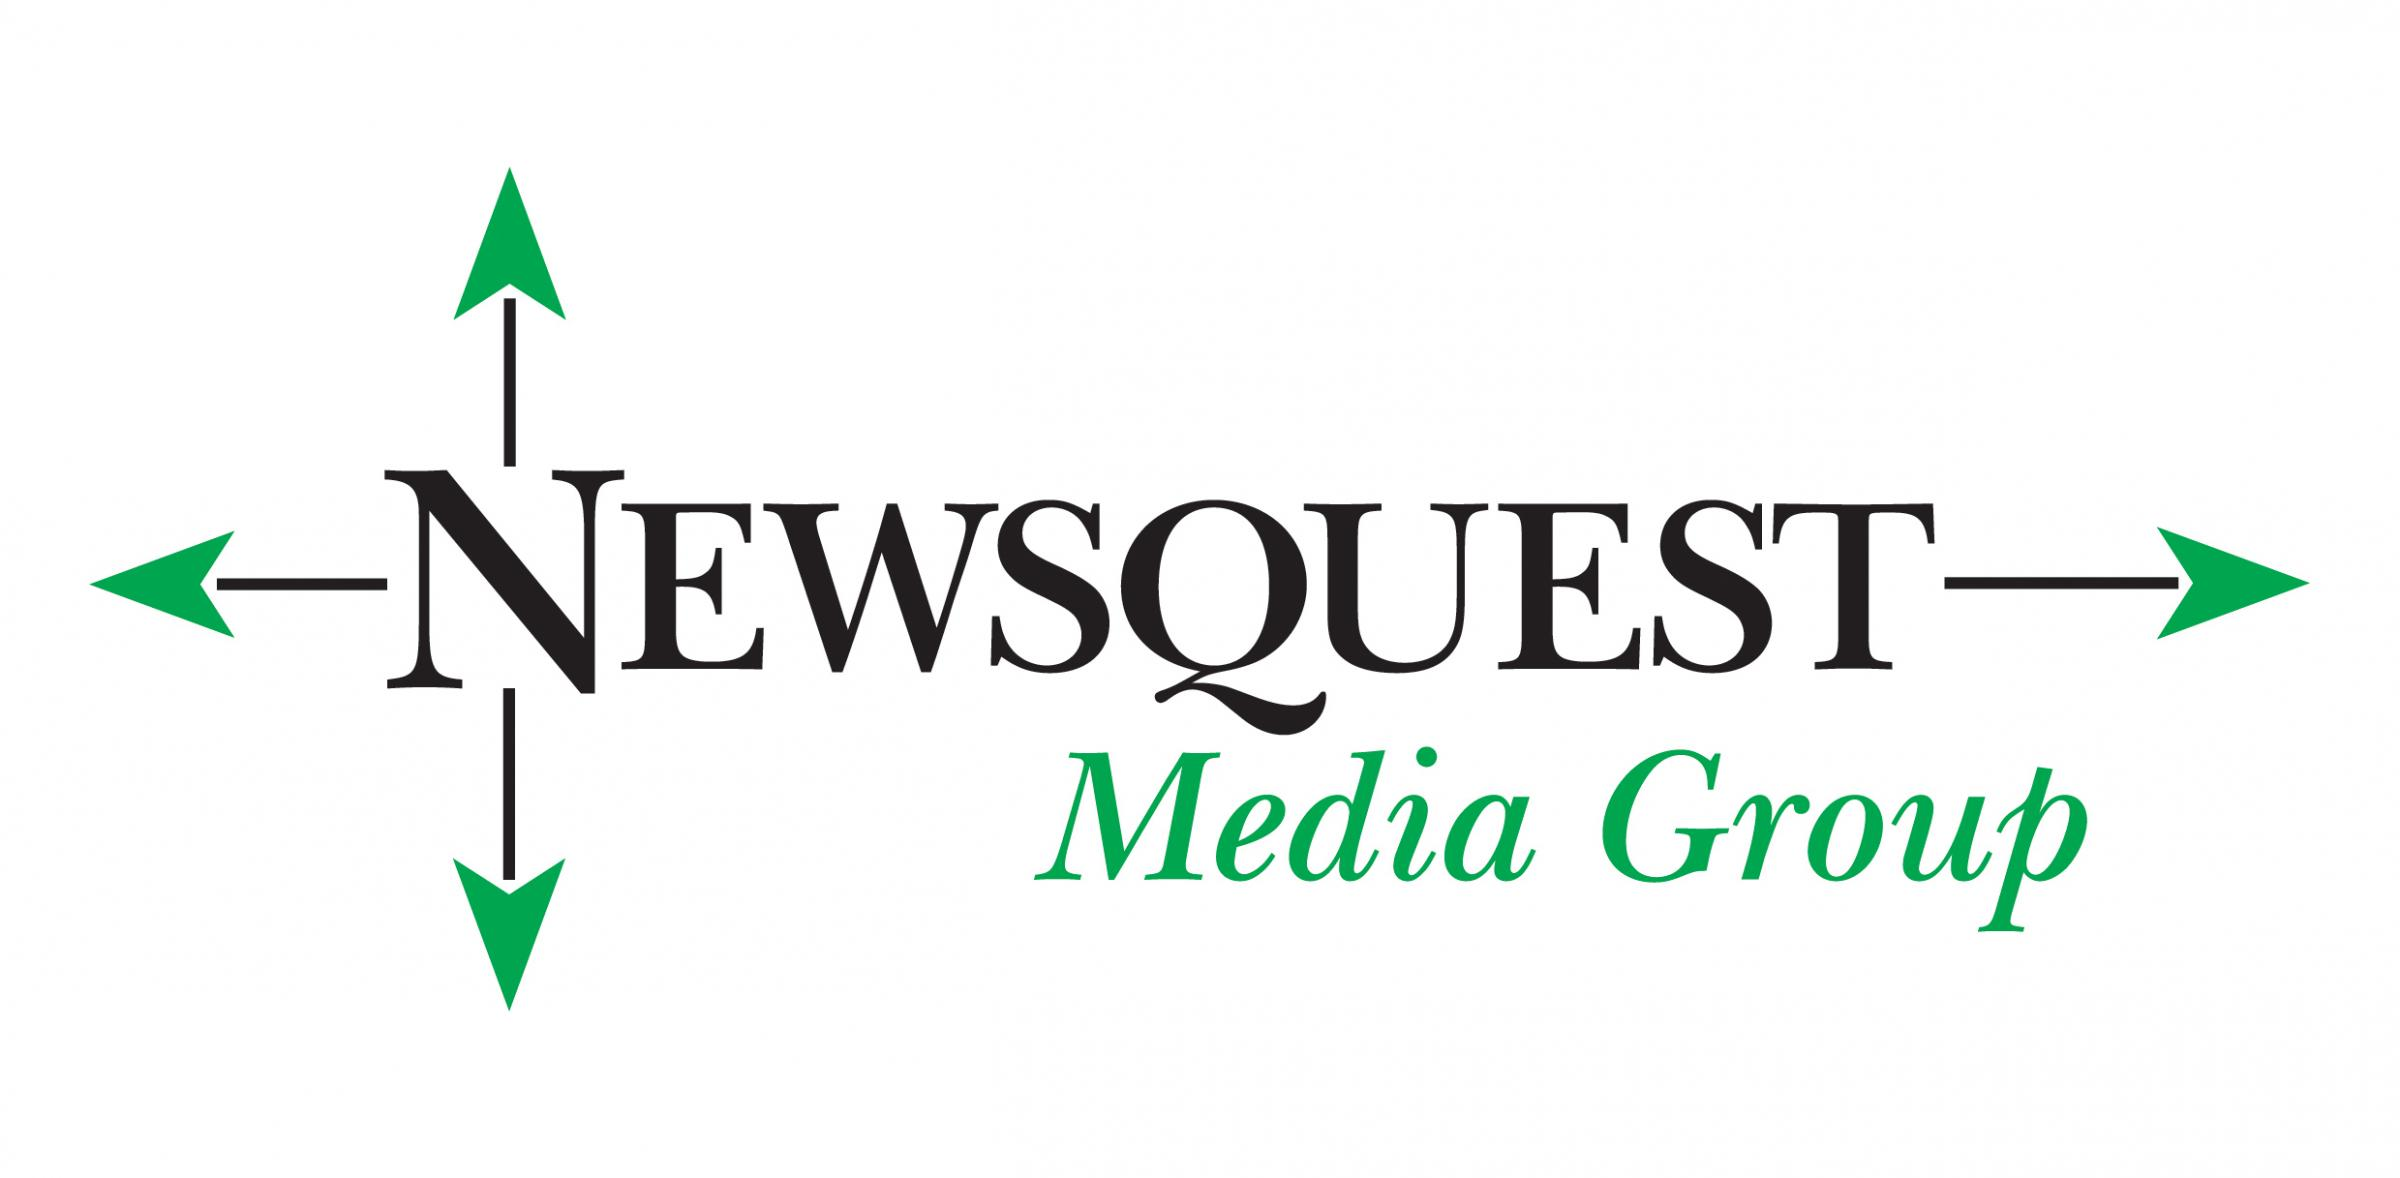 Newsquest - publisher of this website - has won another digital advertising award